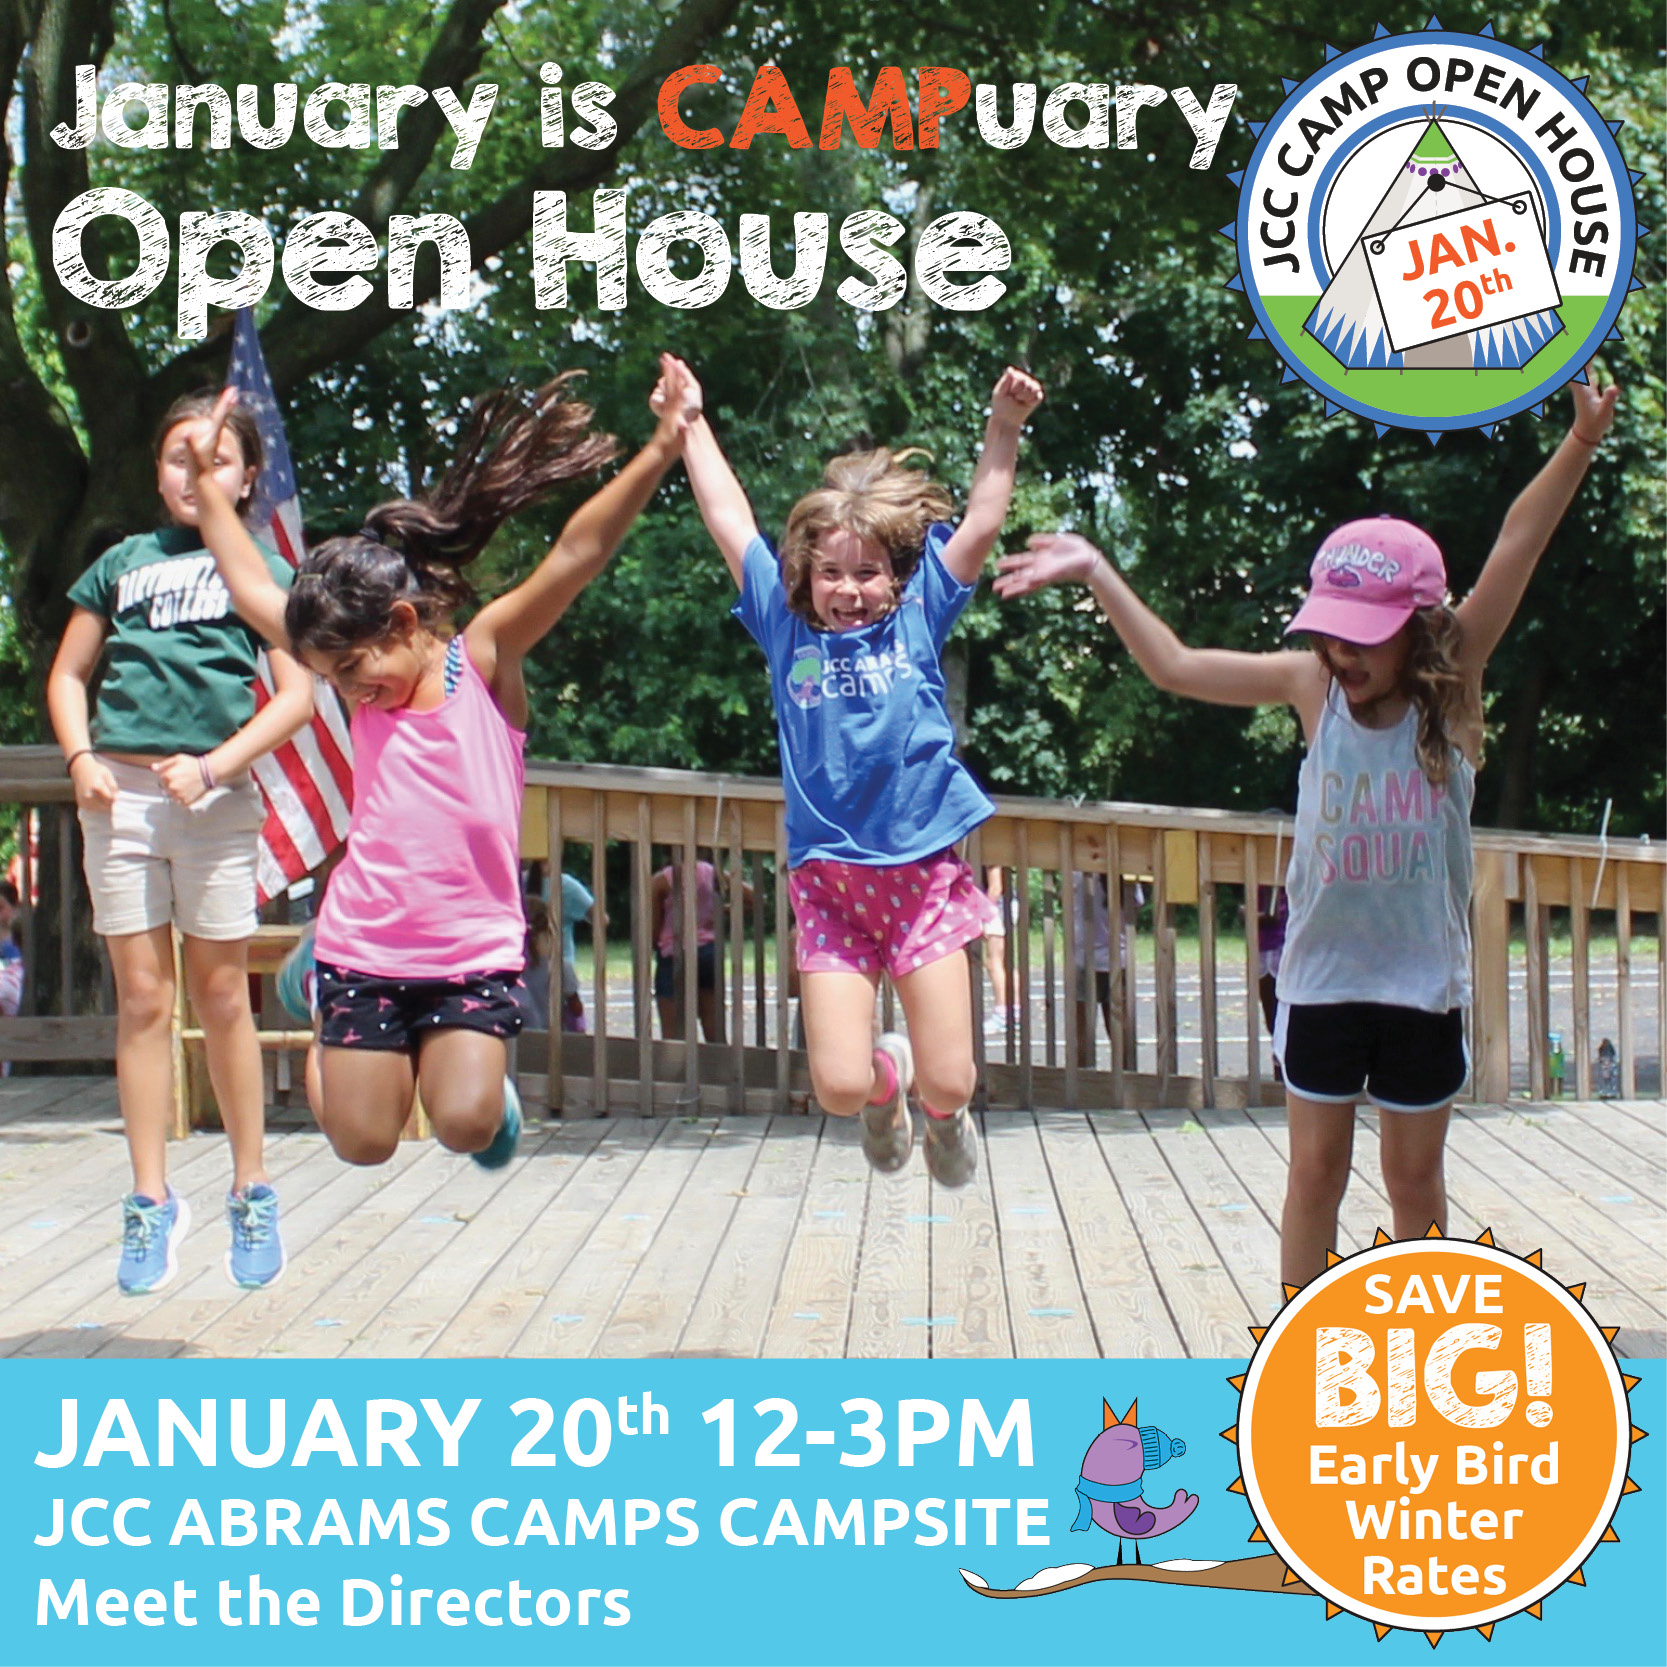 january-campuary-open-house-sq